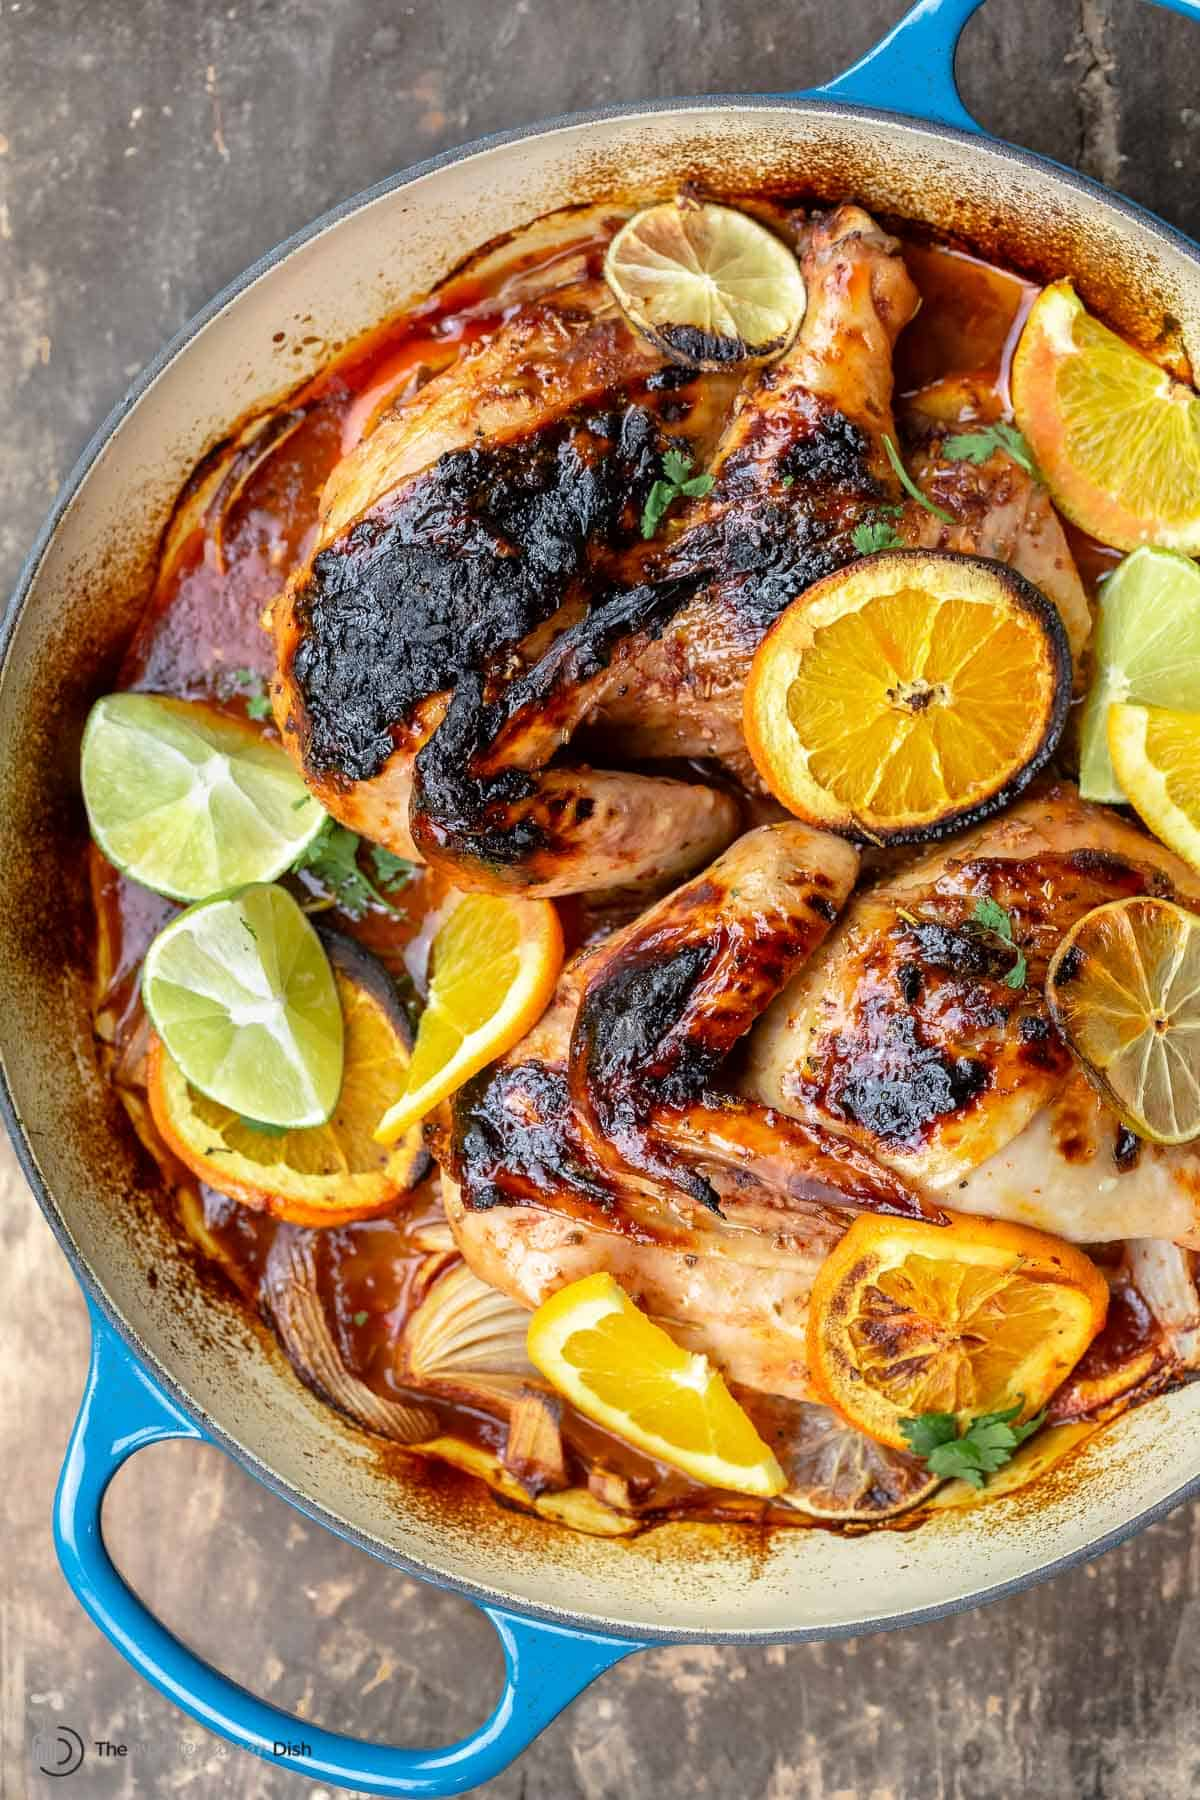 Roasted chicken with rosemary and citrus slices in a braiser